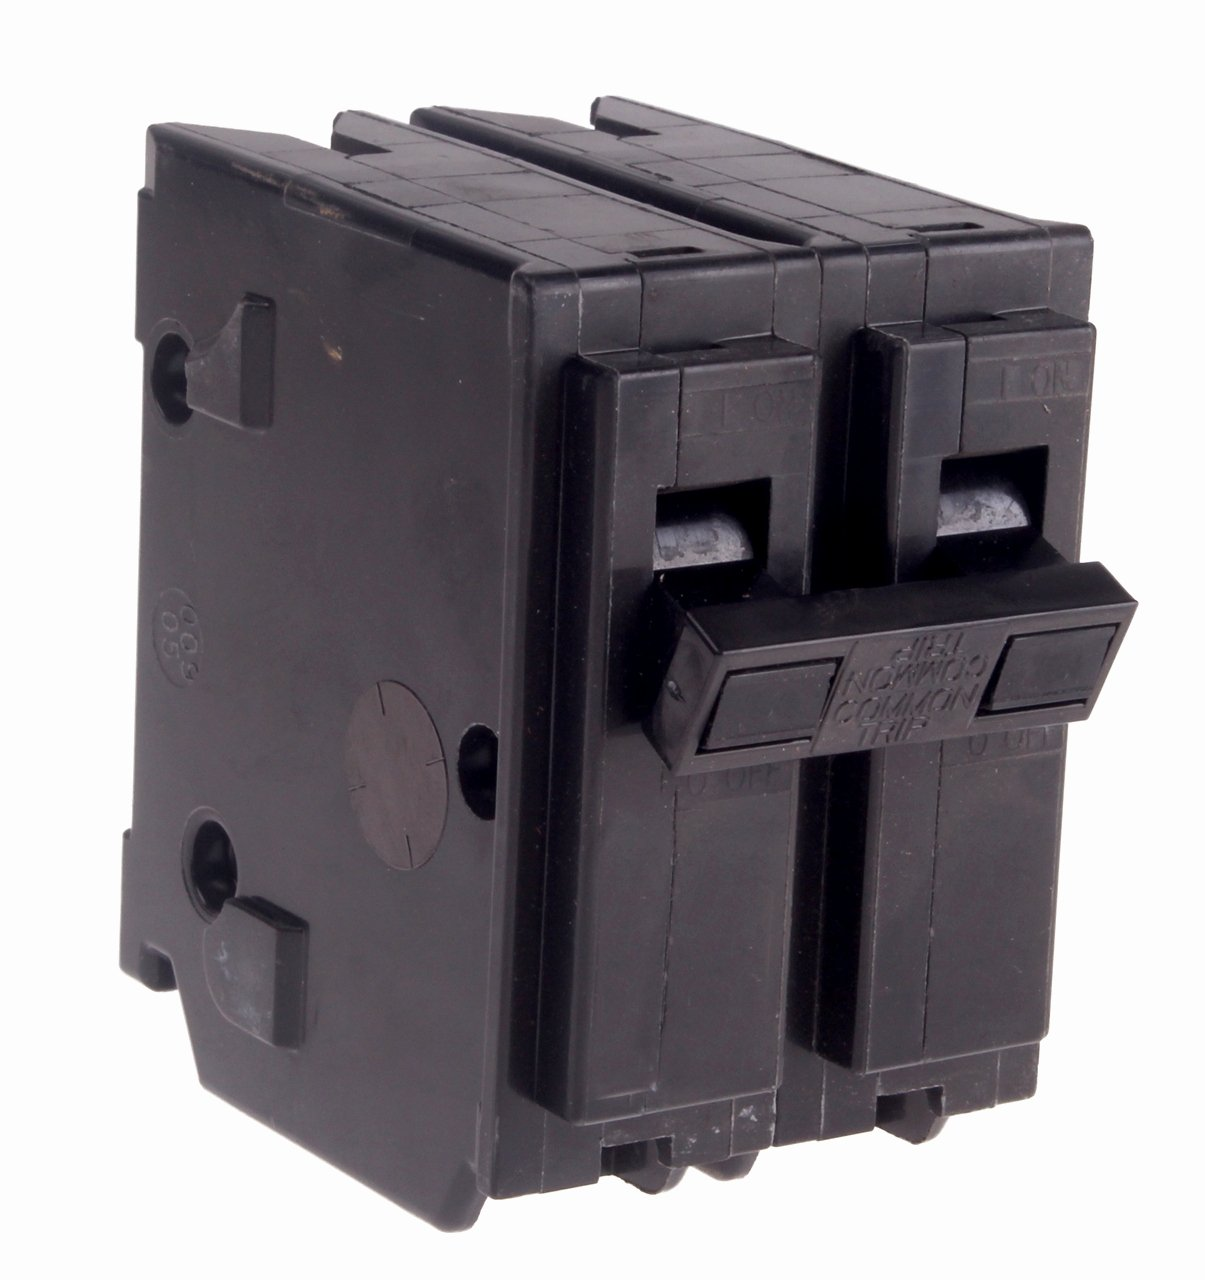 Square D Panel Schedule Lovely 100 Amp Breaker Double Pole